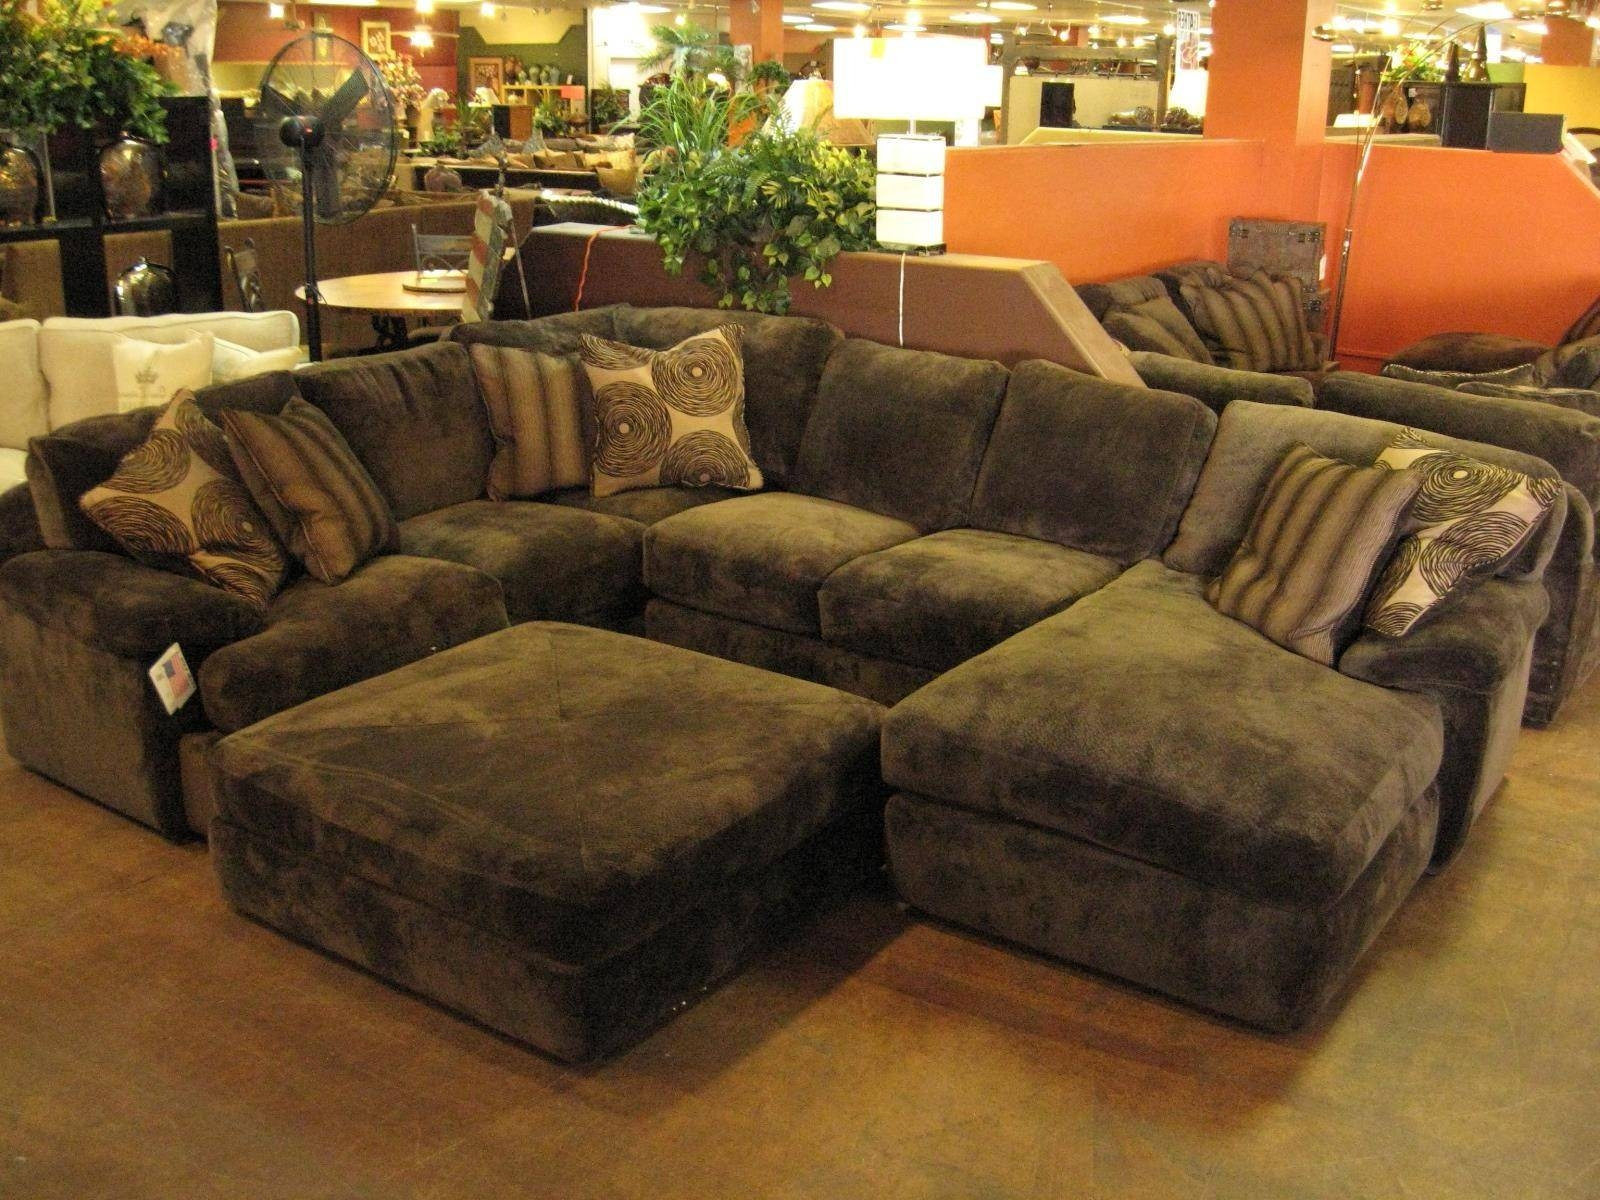 Sofas: Oversized Sofas That Are Ready For Hours Of Lounging Time pertaining to Oversized Sectional Sofa (Image 26 of 30)